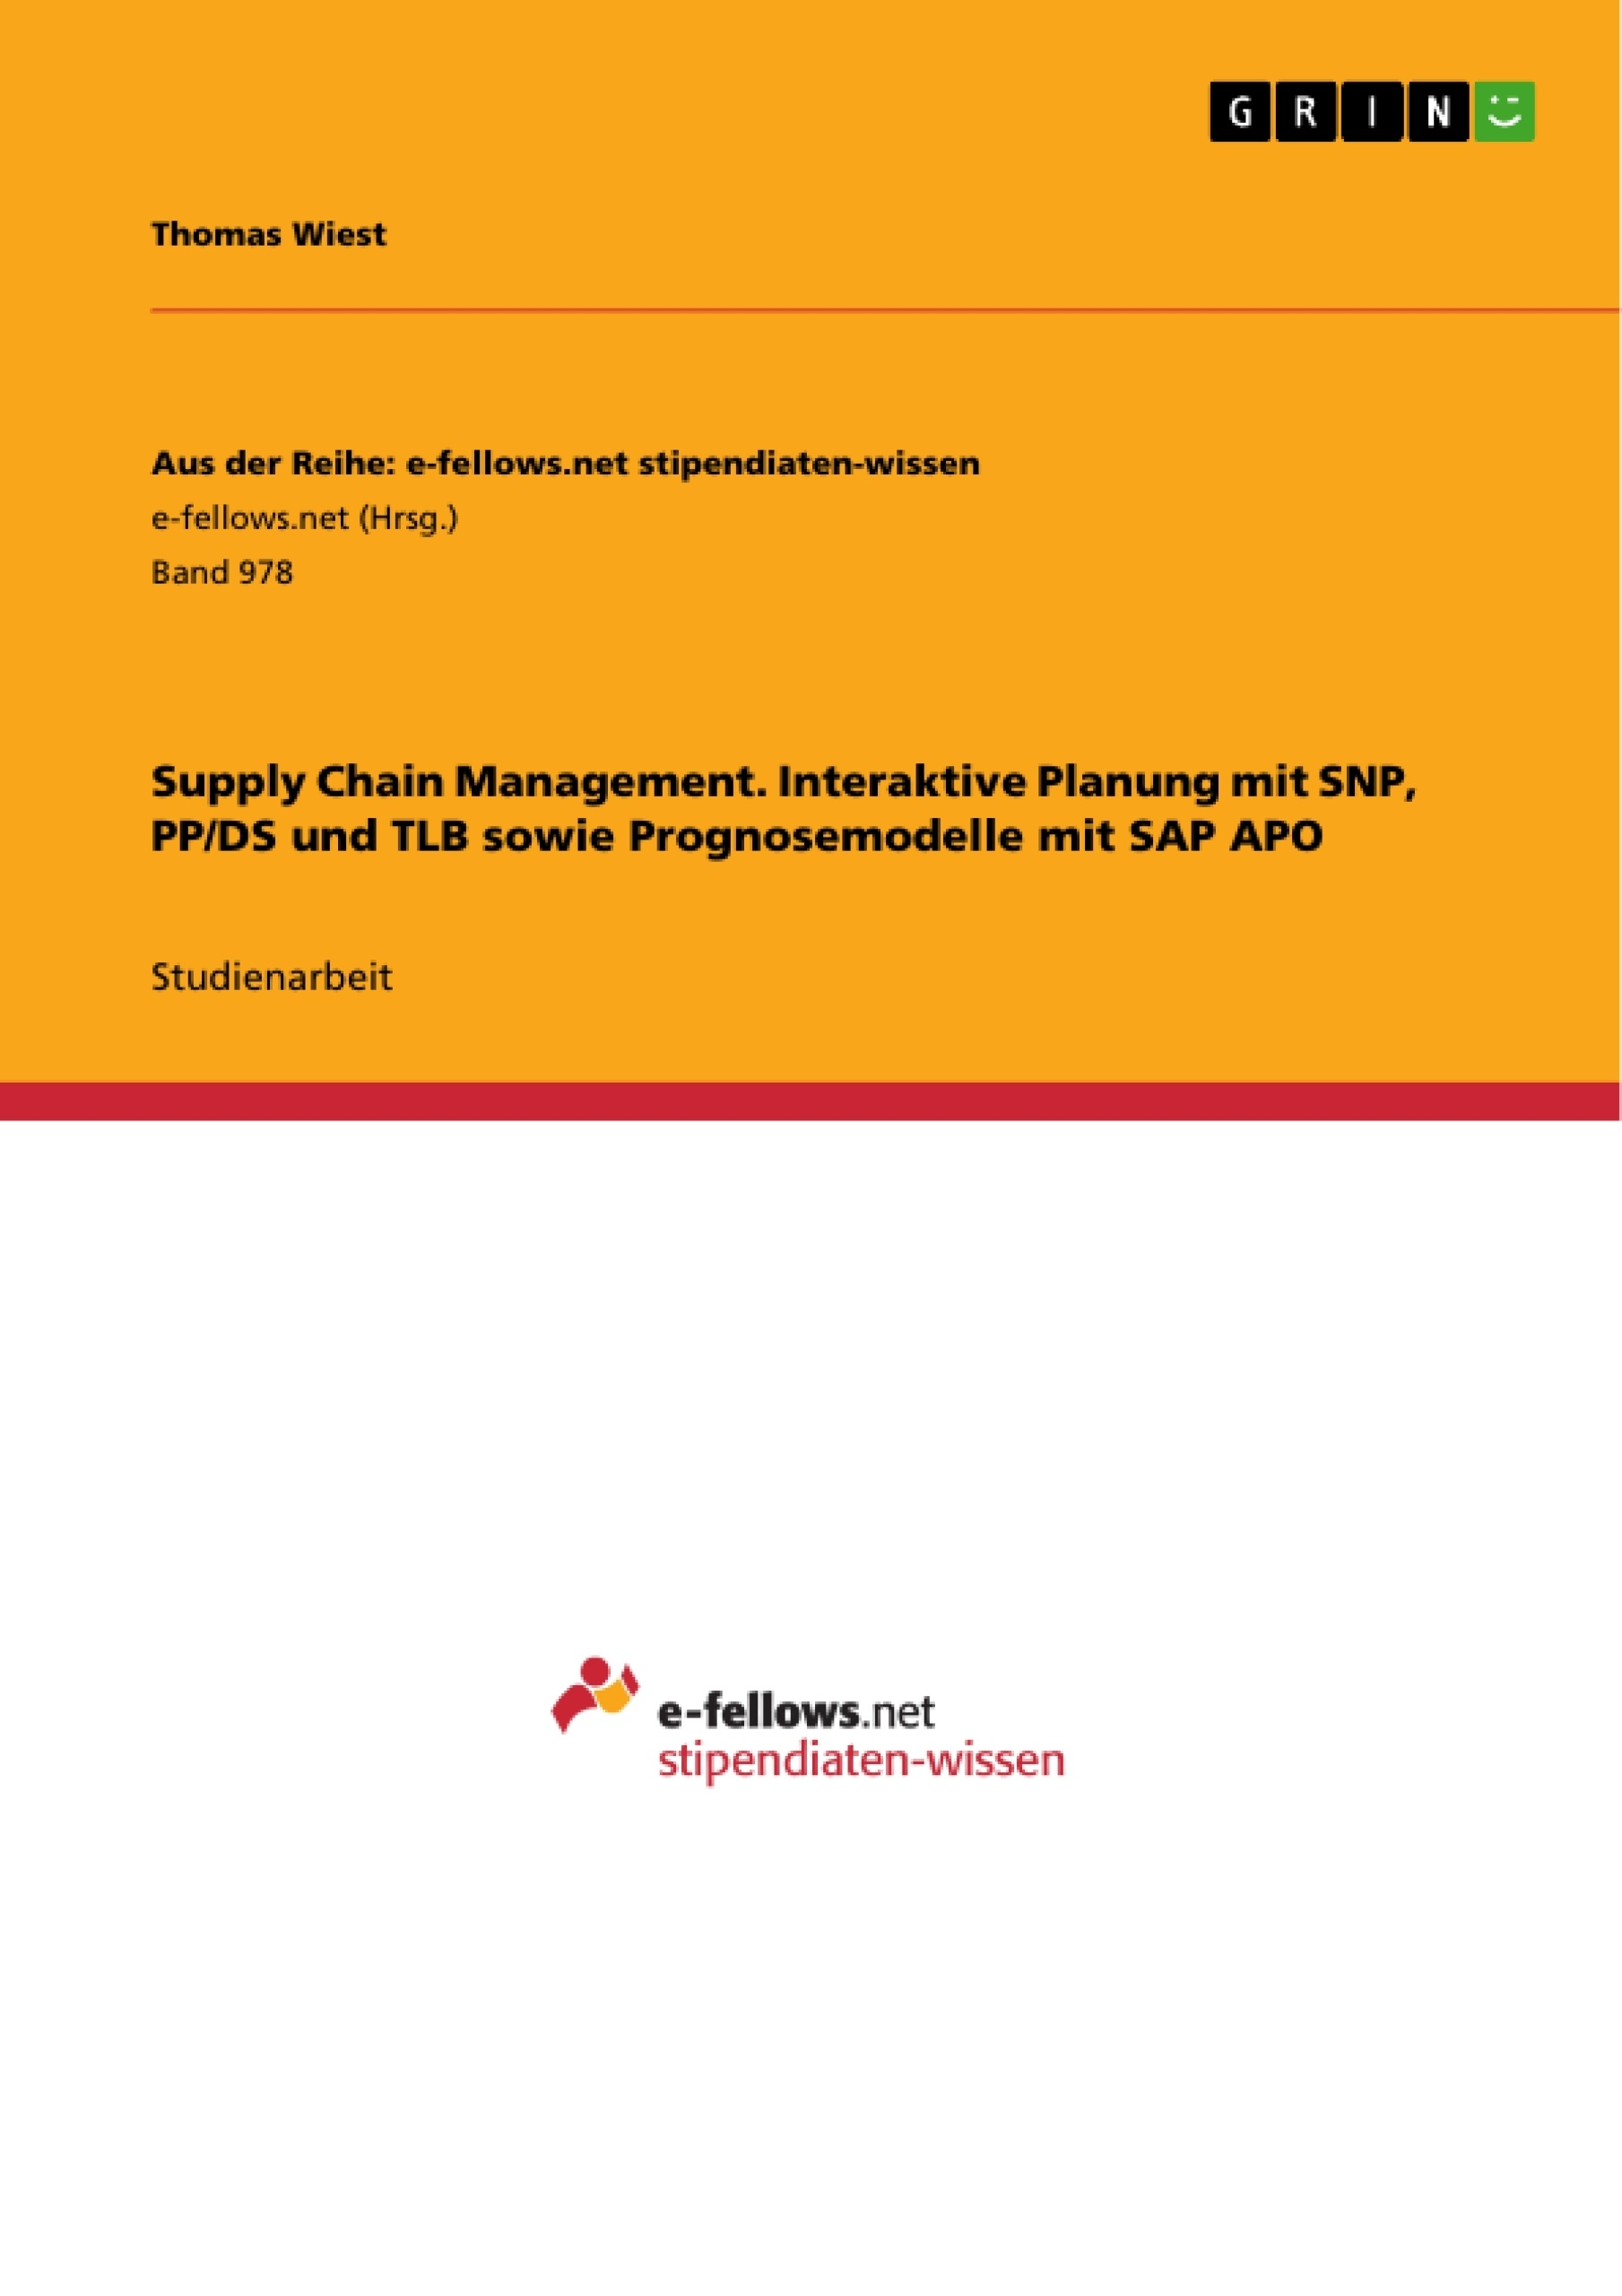 Titel: Supply Chain Management. Interaktive Planung mit SNP, PP/DS und TLB sowie Prognosemodelle mit SAP APO